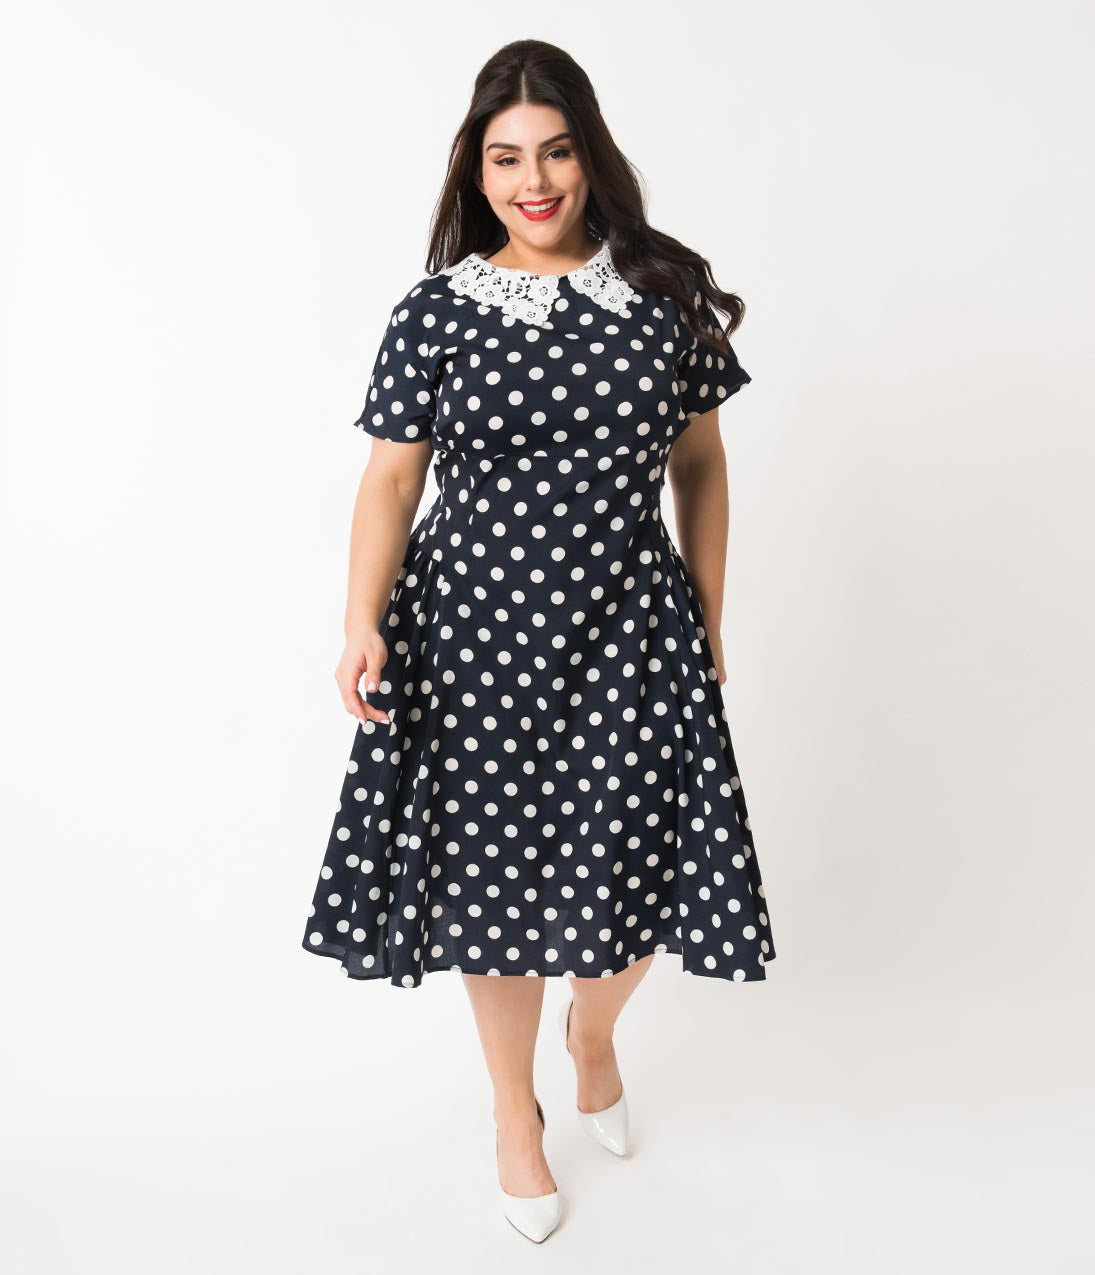 1940s Dresses | 40s Dress, Swing Dress Unique Vintage Plus Size 1940S Navy  White Polka Dot Lace Collar Margie Dress $88.00 AT vintagedancer.com